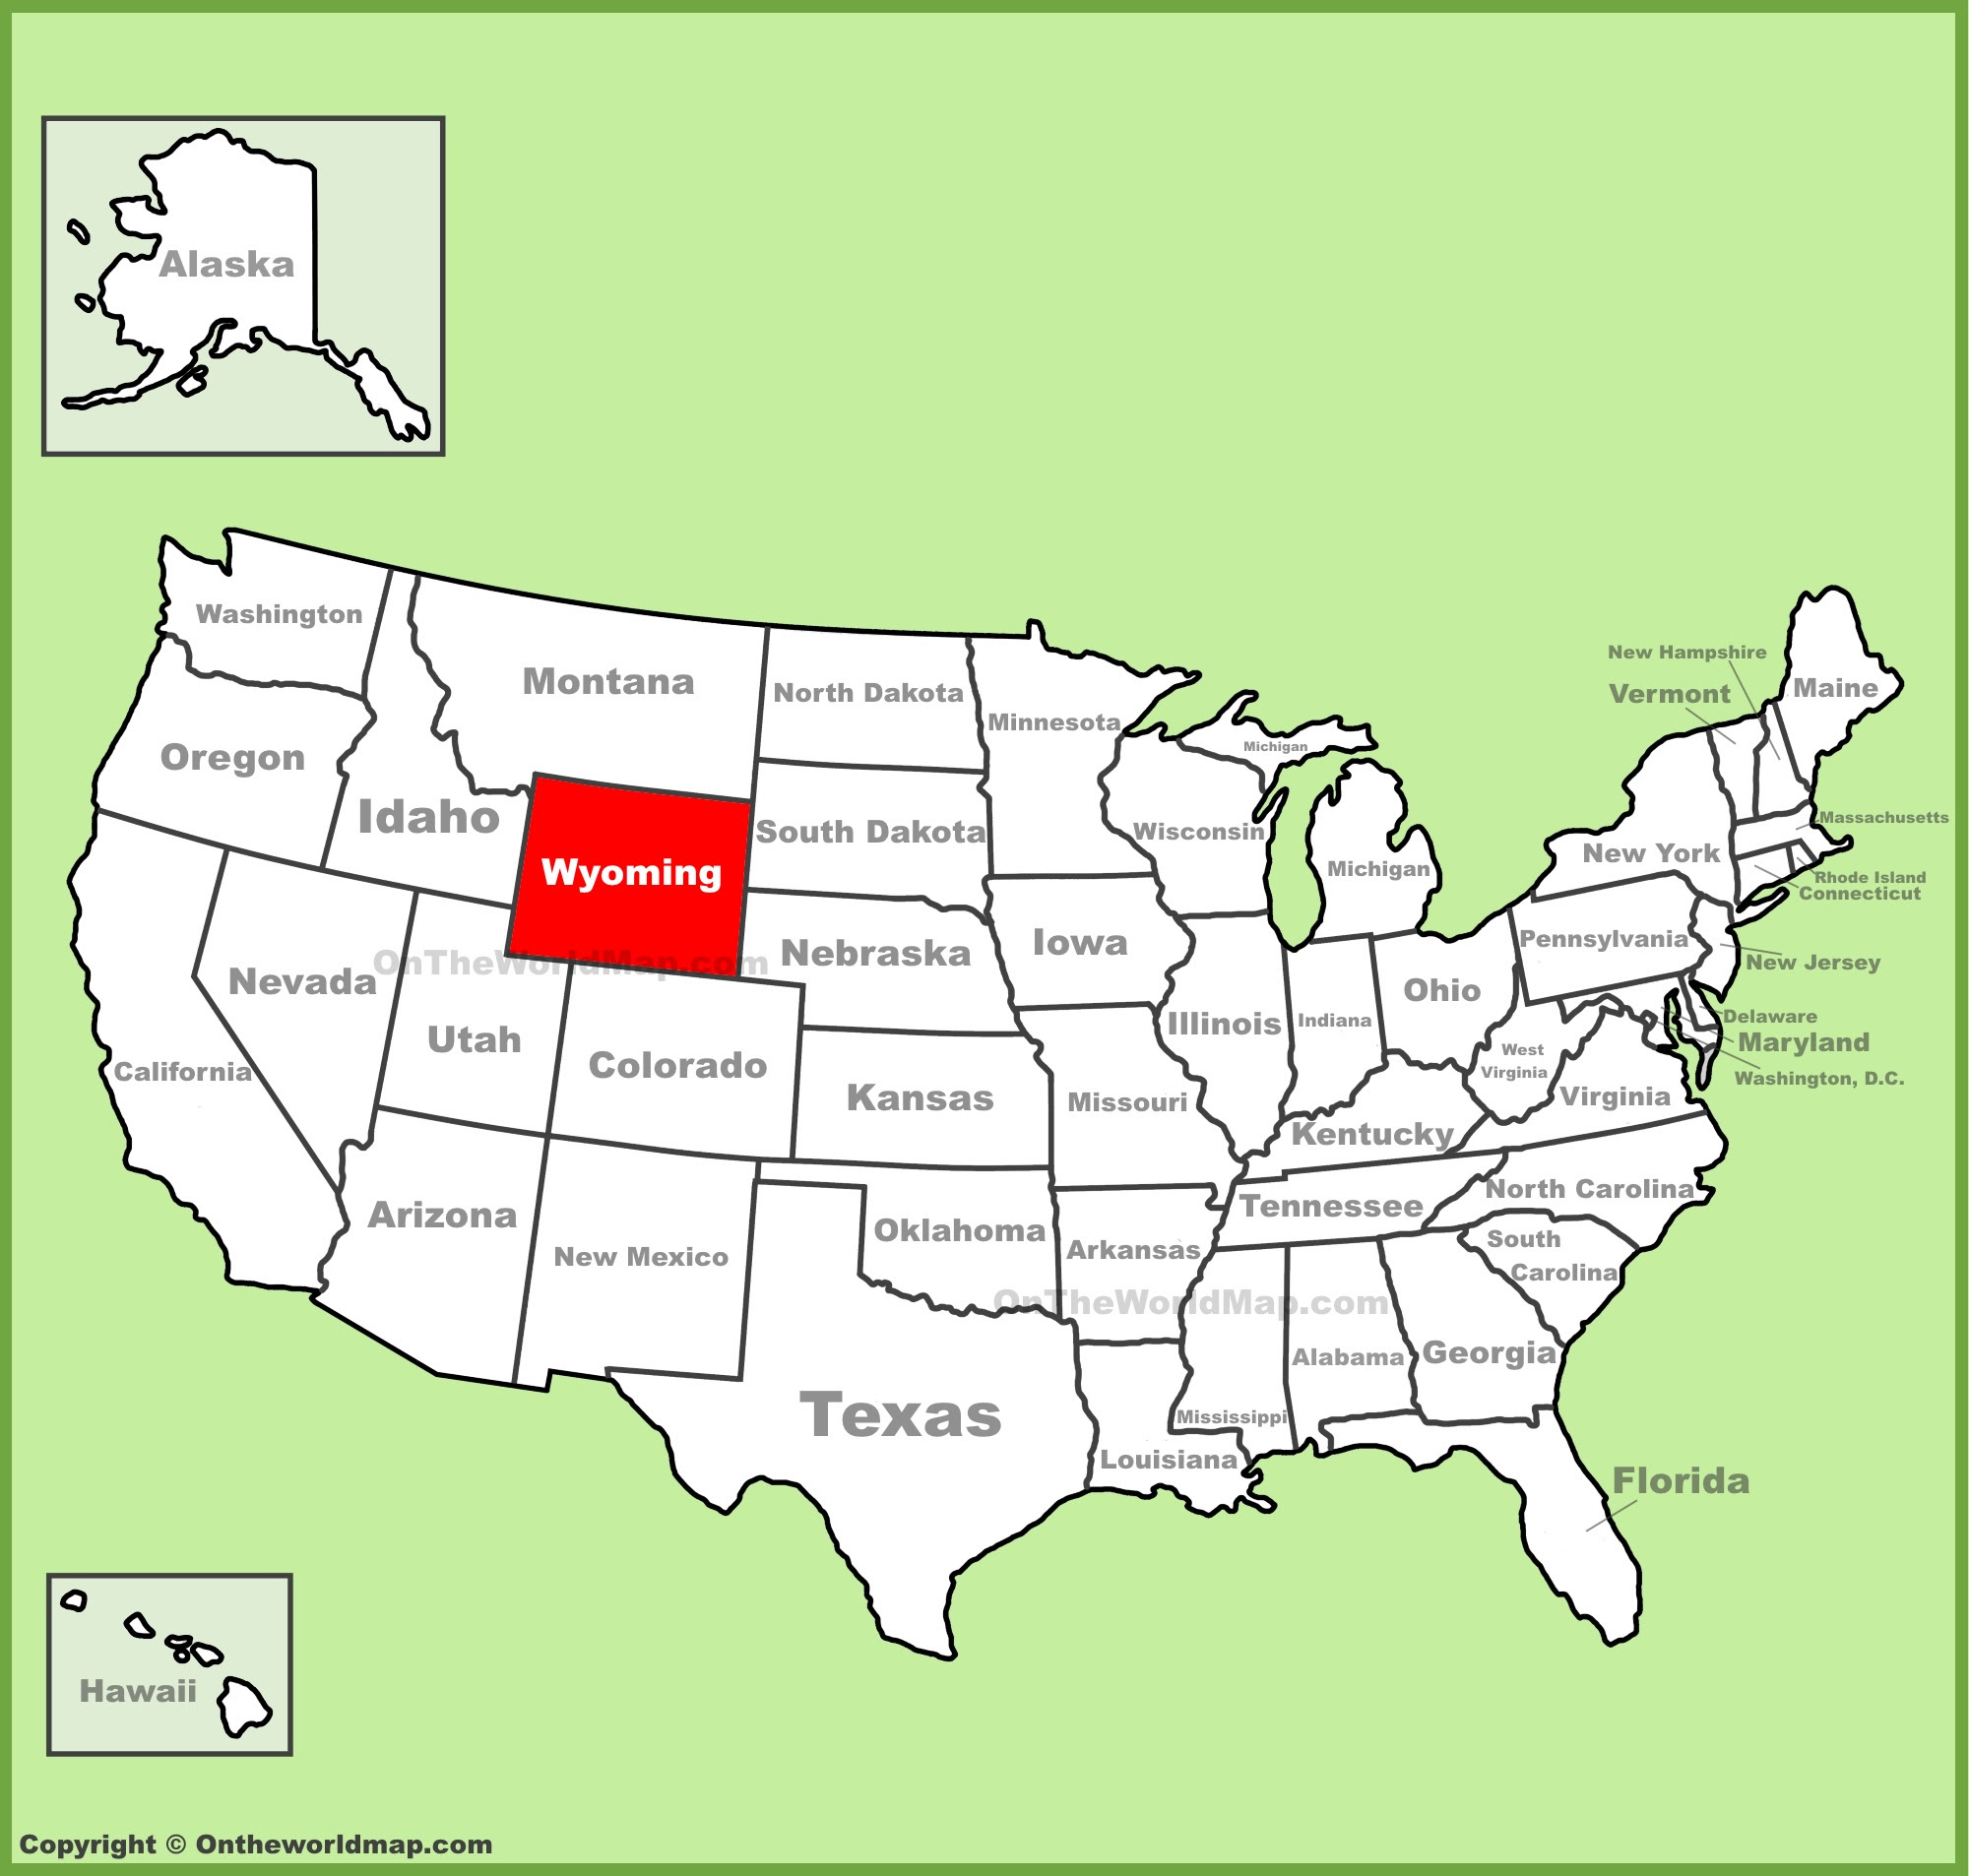 Us Map Wyoming Mountain Wy On Us Maps on il on us map, tn on us map, ky on us map, ak on us map, vermont on us map, mi on us map, ms on us map, mexico on us map, la on us map, ny on us map, nj on us map, quebec on us map, nh on us map, nc on us map, ks on us map, ia on us map, utah on us map, montana on us map, wi on us map, ma on us map,